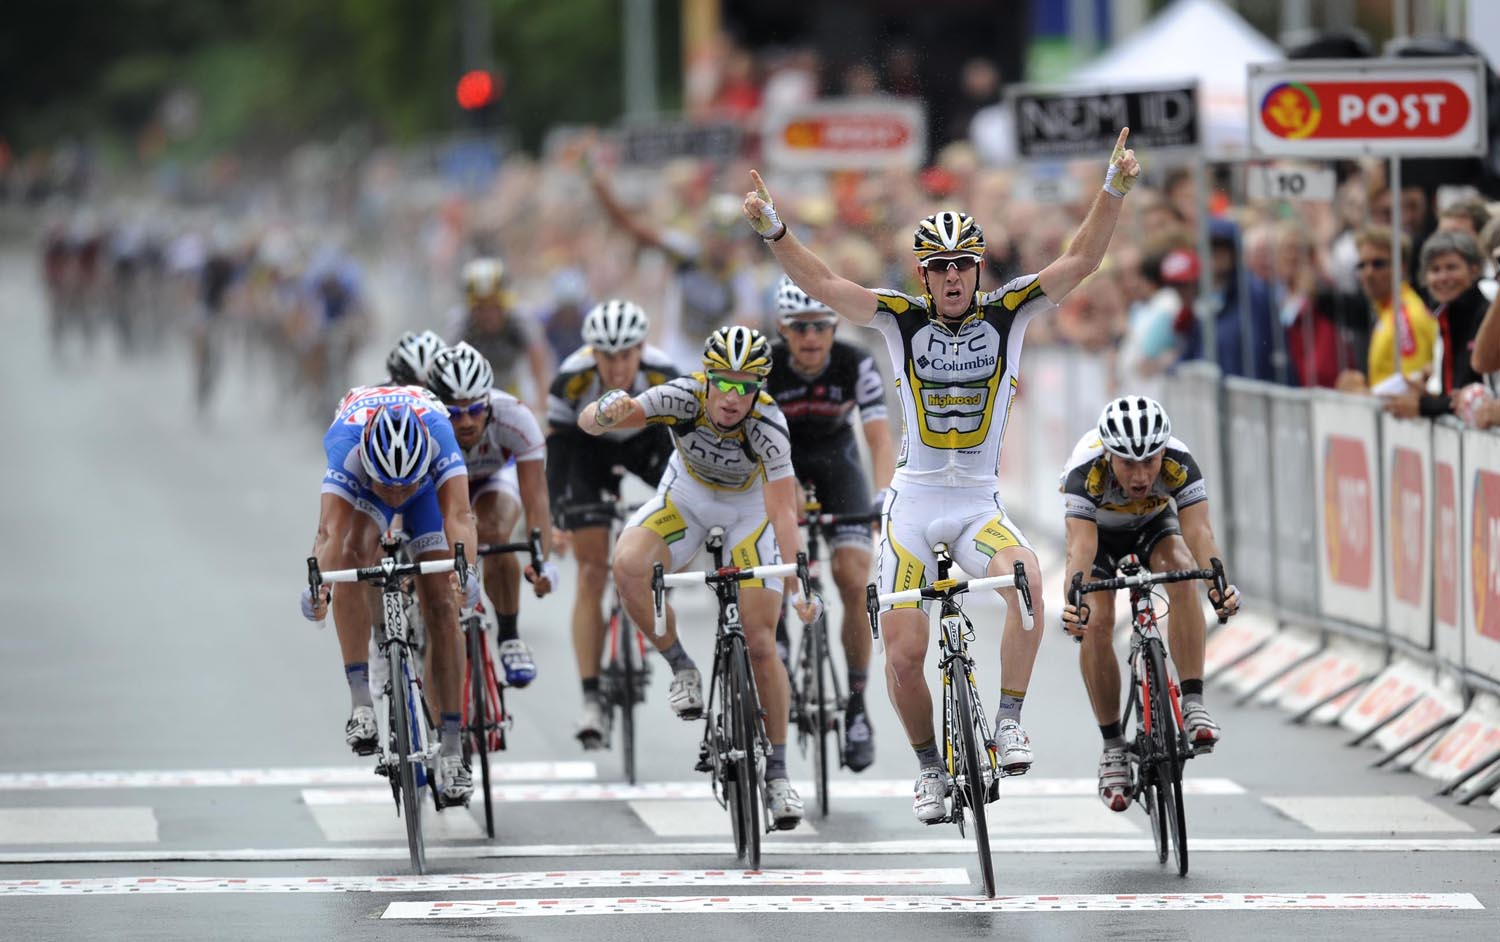 Matt goss wins, Tour of Denmark 2010, stage one